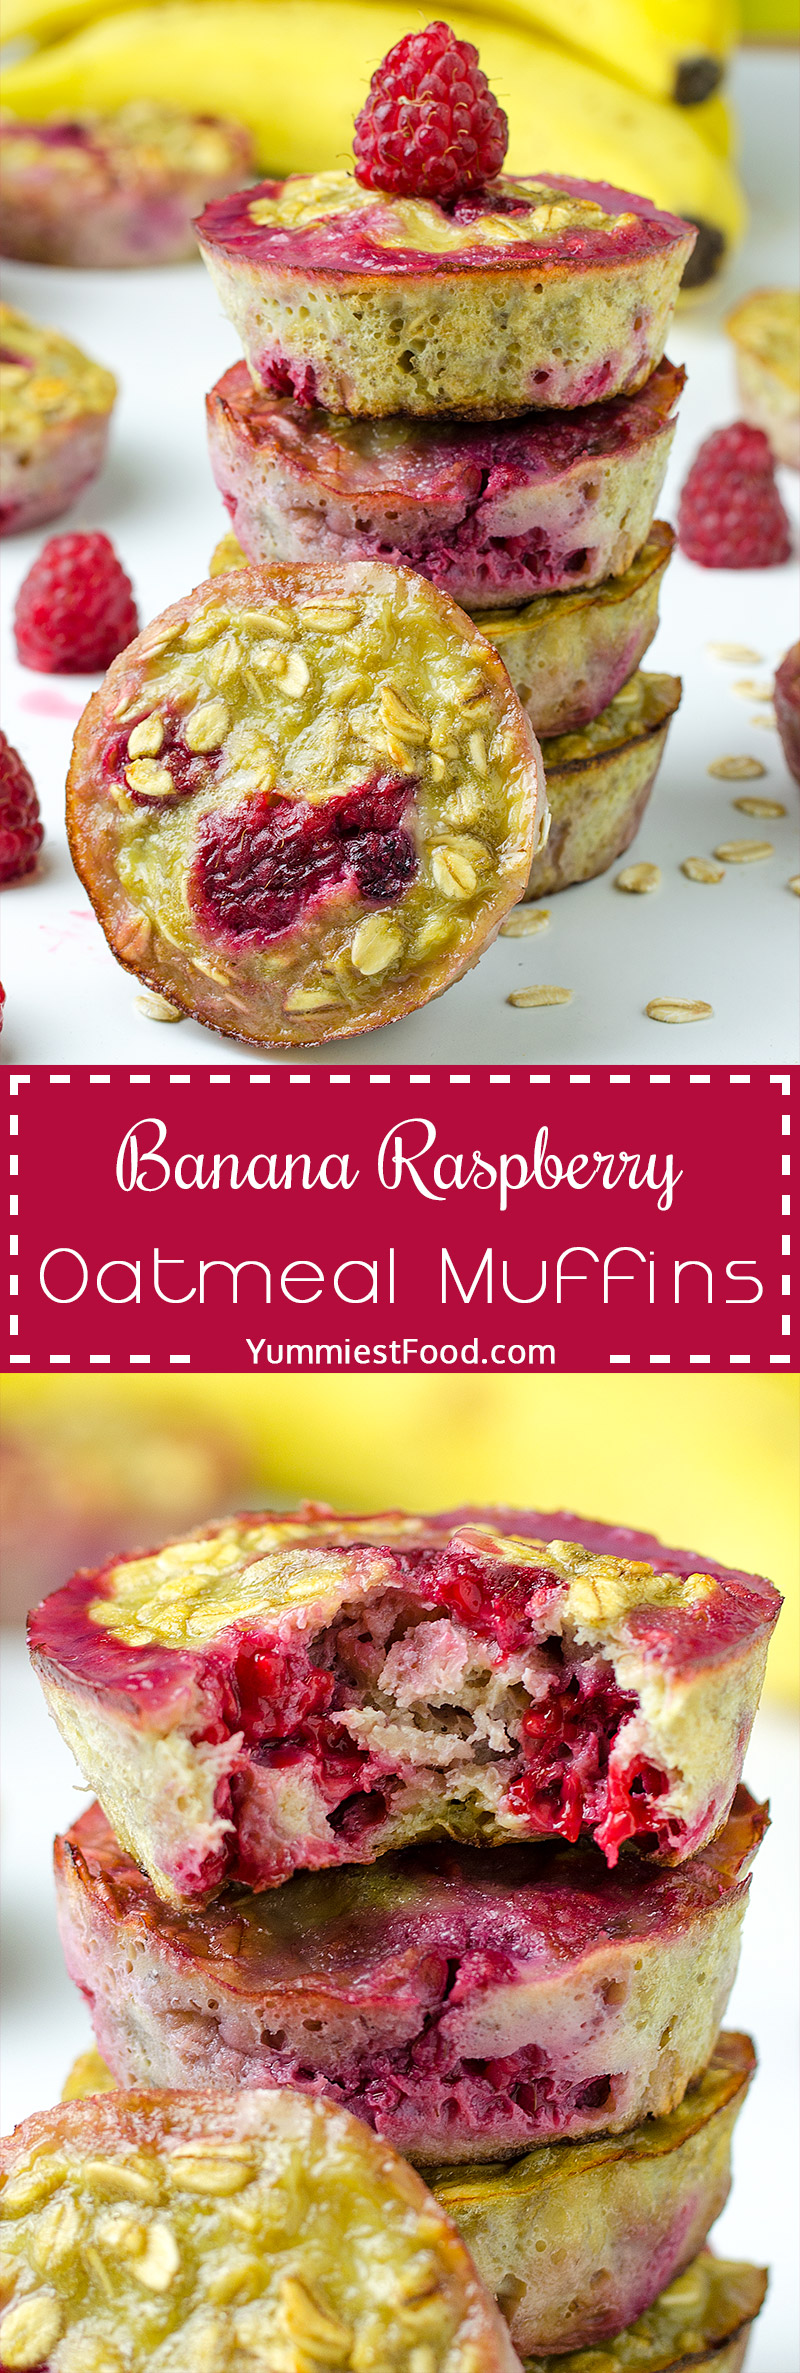 HEALTHY BANANA RASPBERRY OATMEAL MUFFINS - A QUICK, EASY and delicious recipe with FOUR ingredients, NO flour, sugar or butter